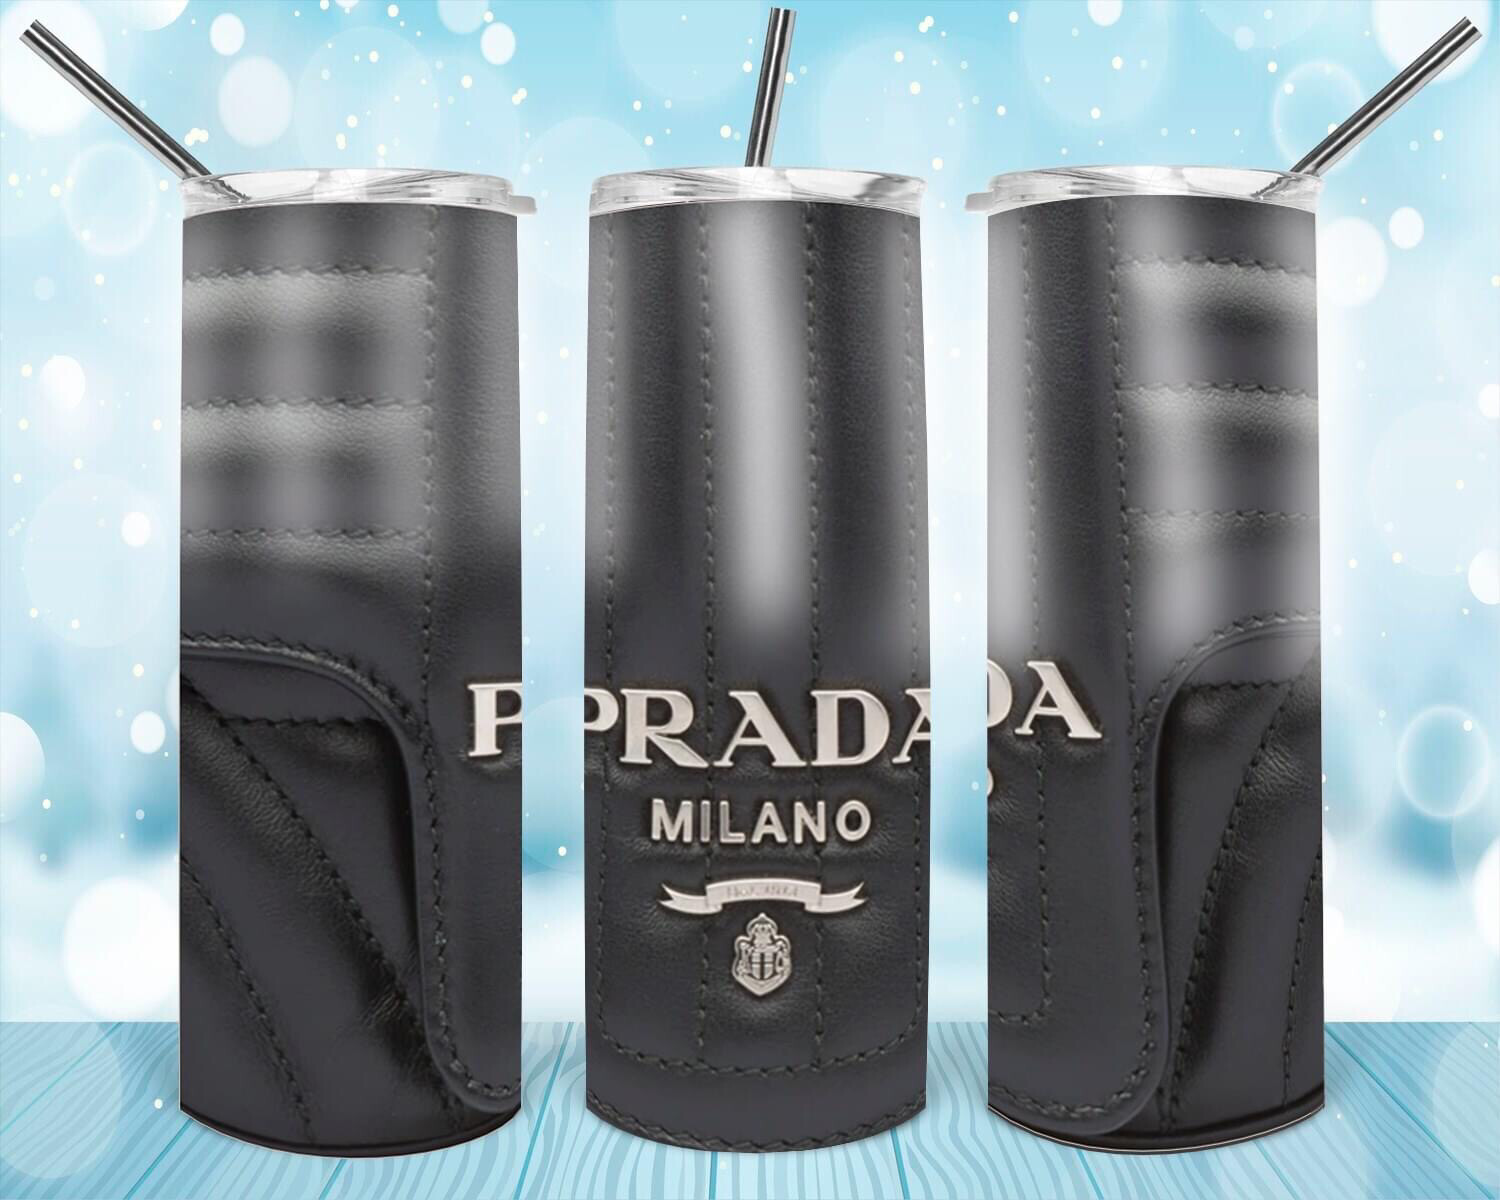 Black Prada Bag Look Tumbler